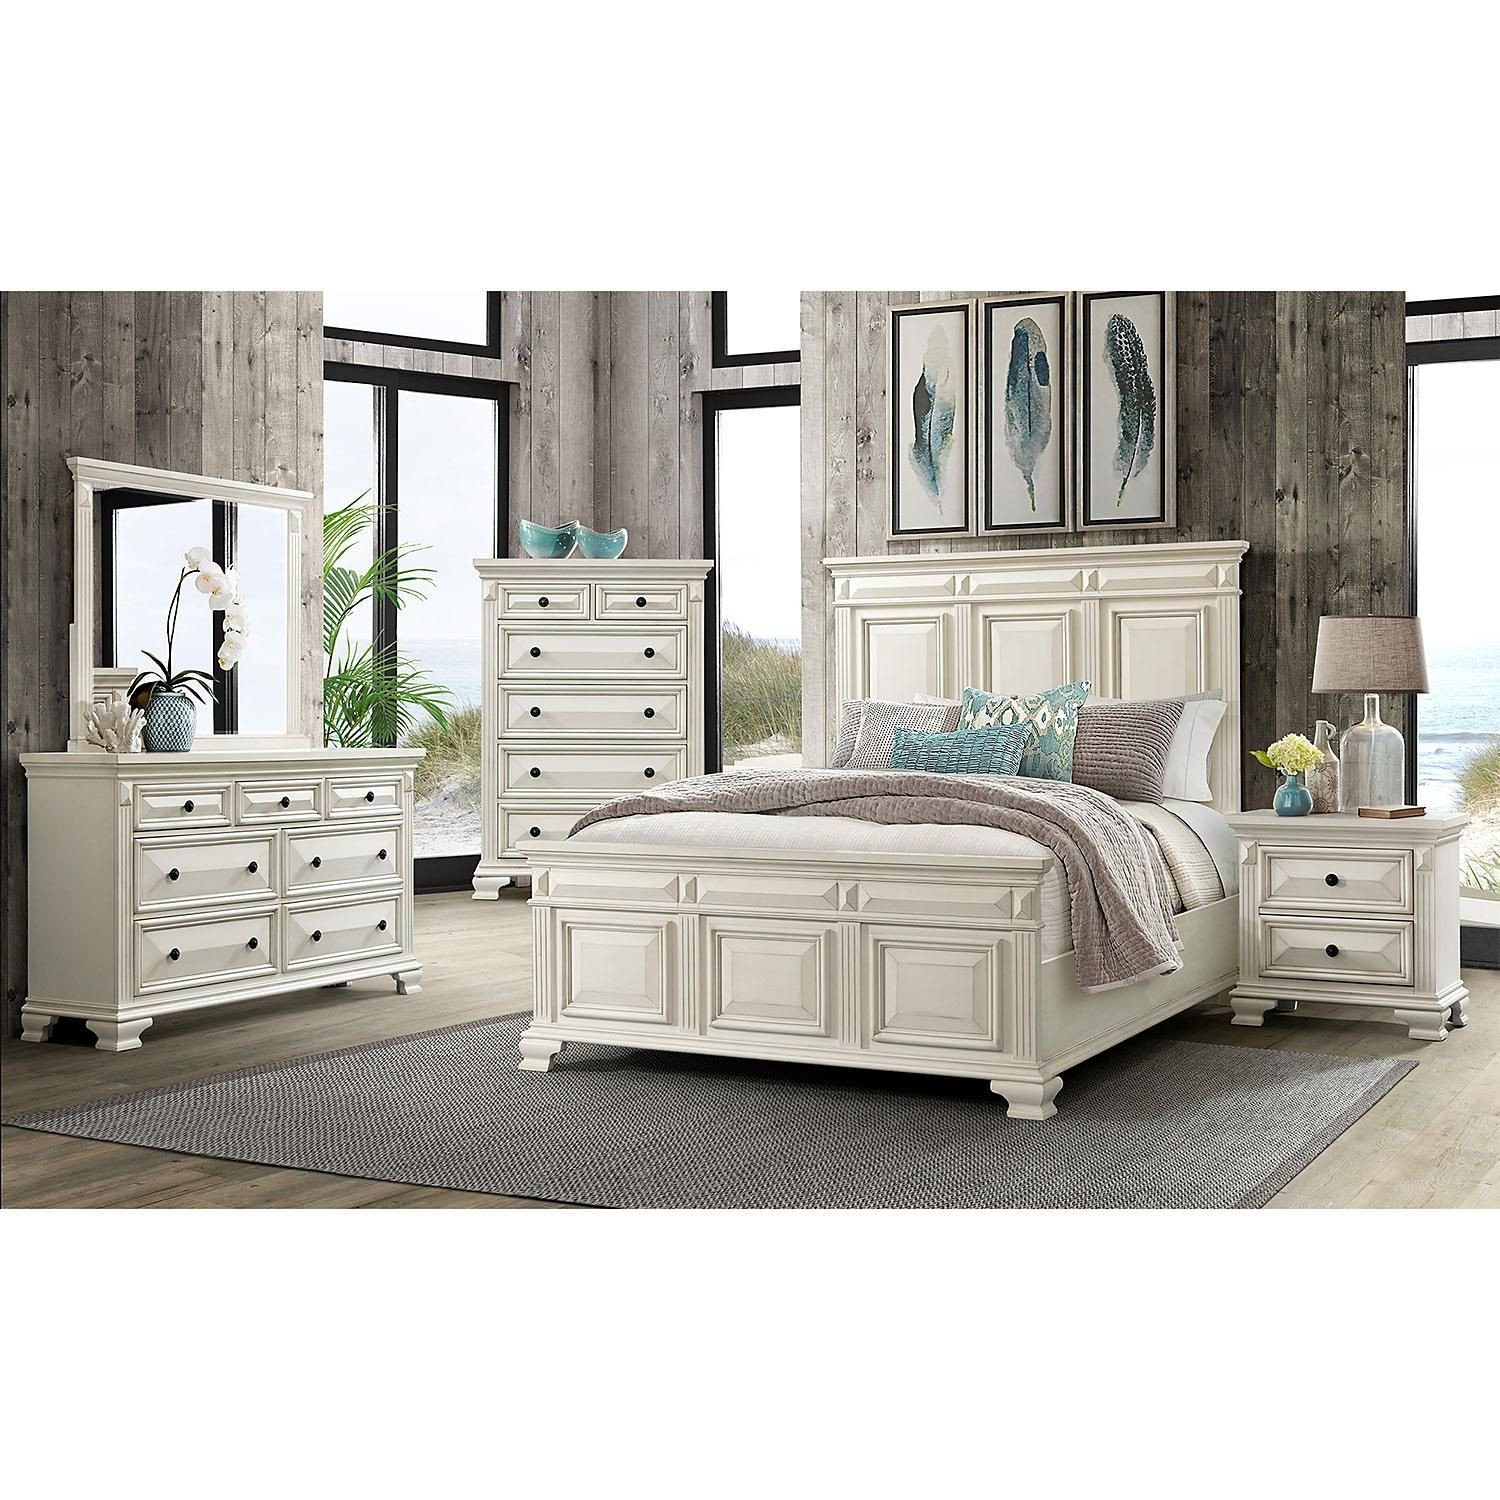 Cheap White Bedroom Furniture Set Luxury $1599 00 society Den Trent Panel 6 Piece King Bedroom Set